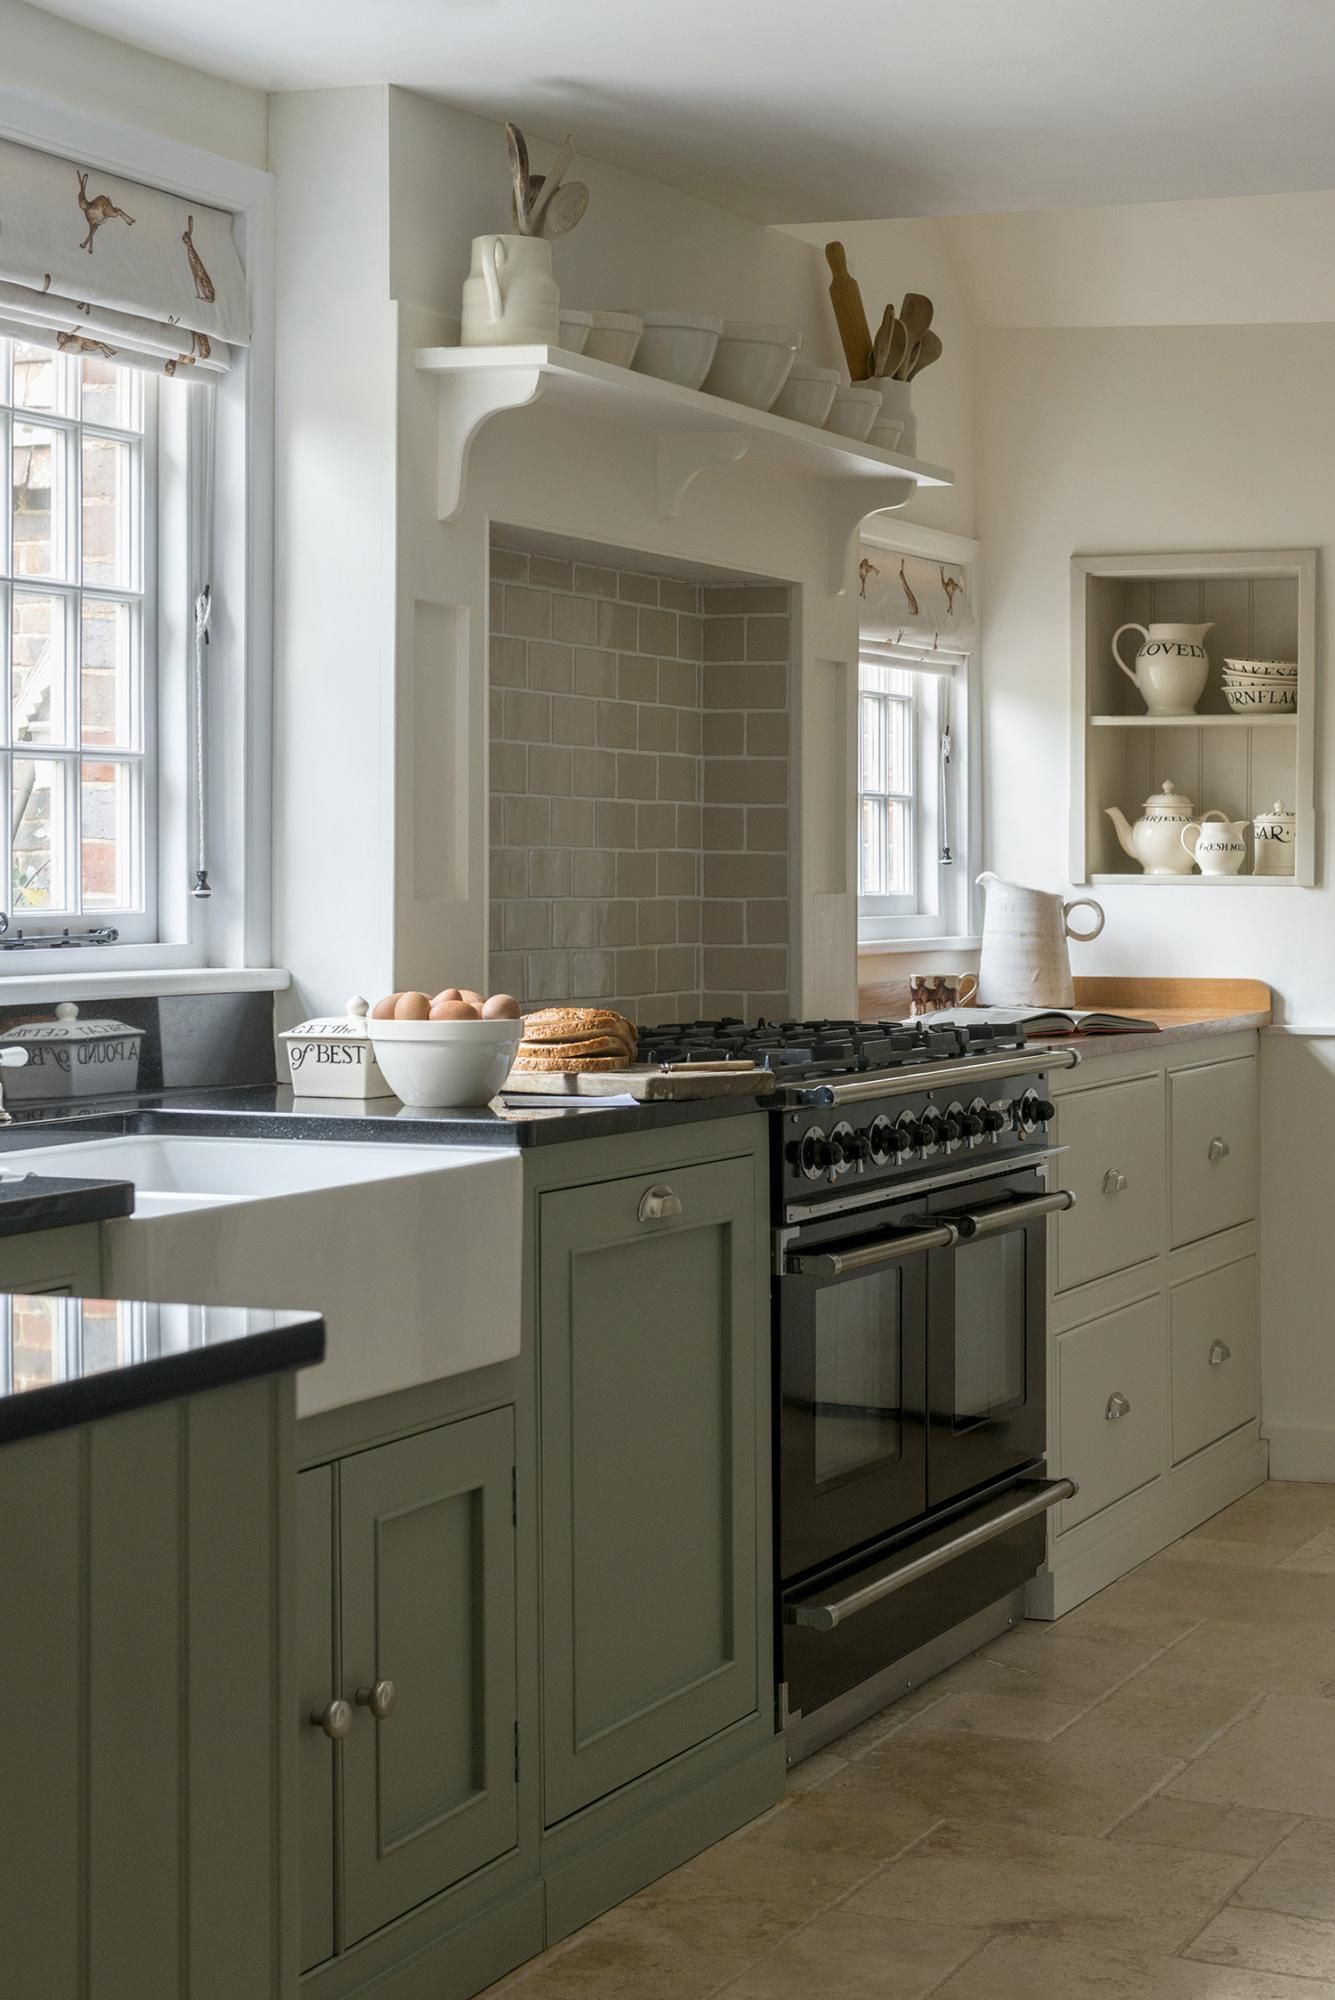 At Middleton our aim is simple; to create spaces to cook